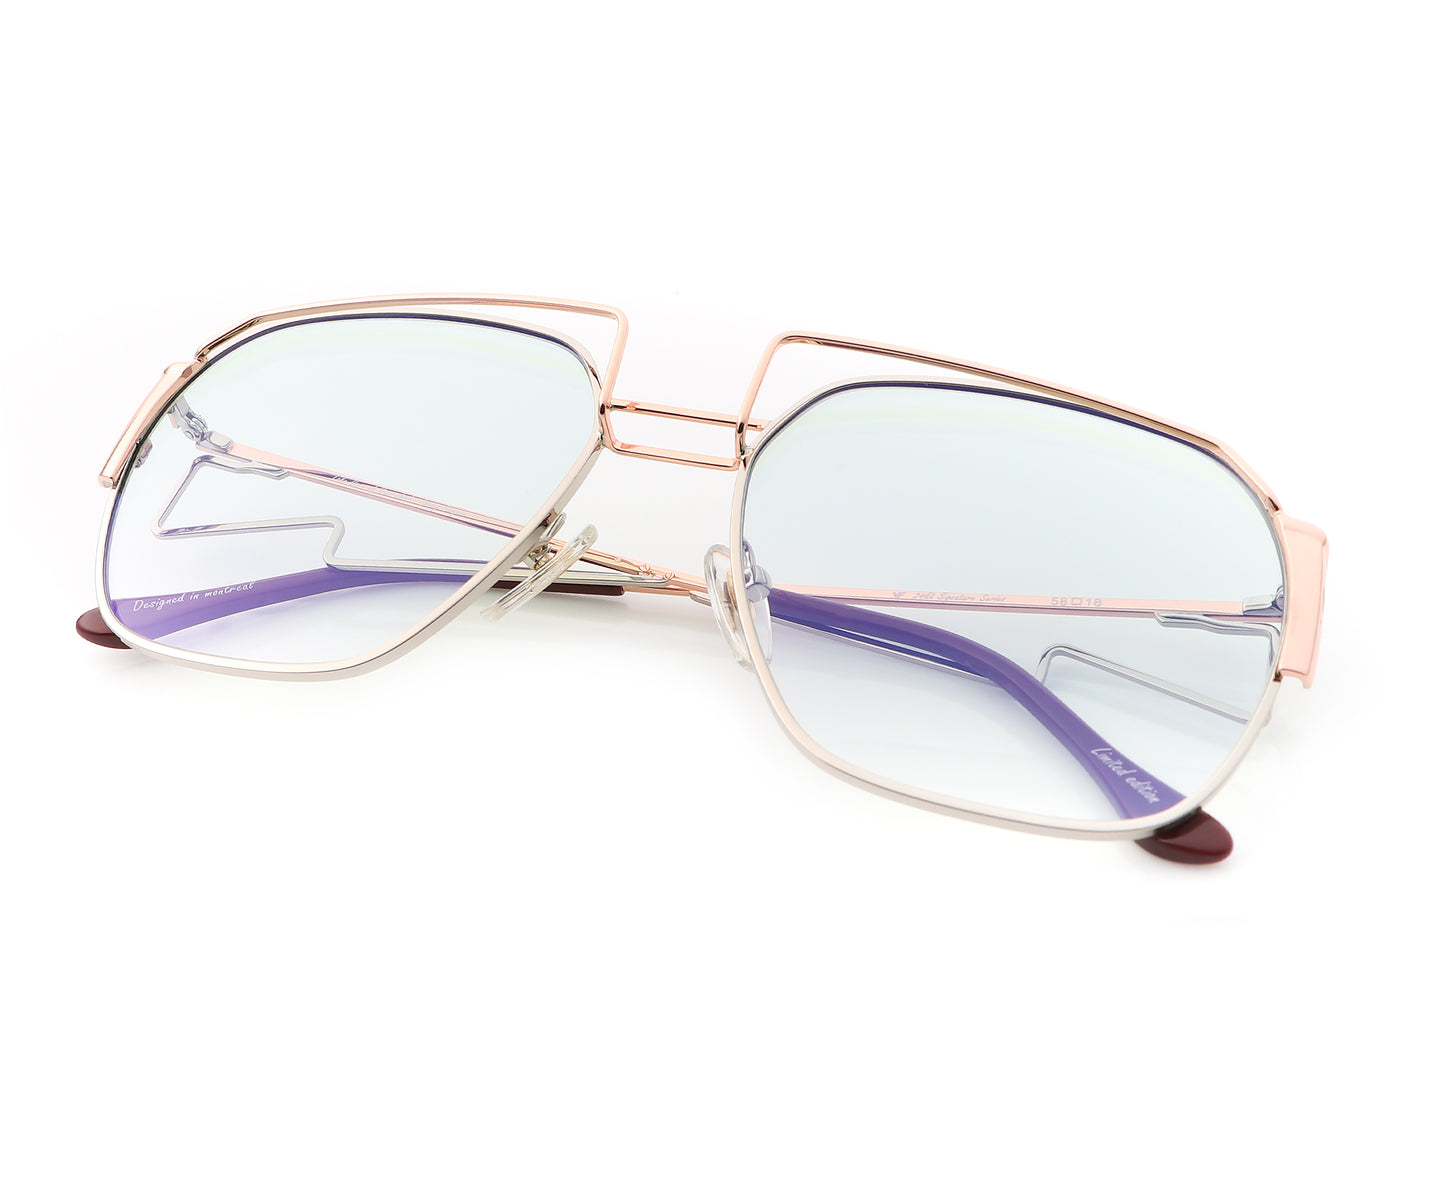 Geometric Collection: Executive 24KT Rose Gold Two-Tone (Powder Green), VF Masterpiece , glasses frames, eyeglasses online, eyeglass frames, mens glasses, womens glasses, buy glasses online, designer eyeglasses, vintage sunglasses, retro sunglasses, vintage glasses, sunglass, eyeglass, glasses, lens, vintage frames company, vf